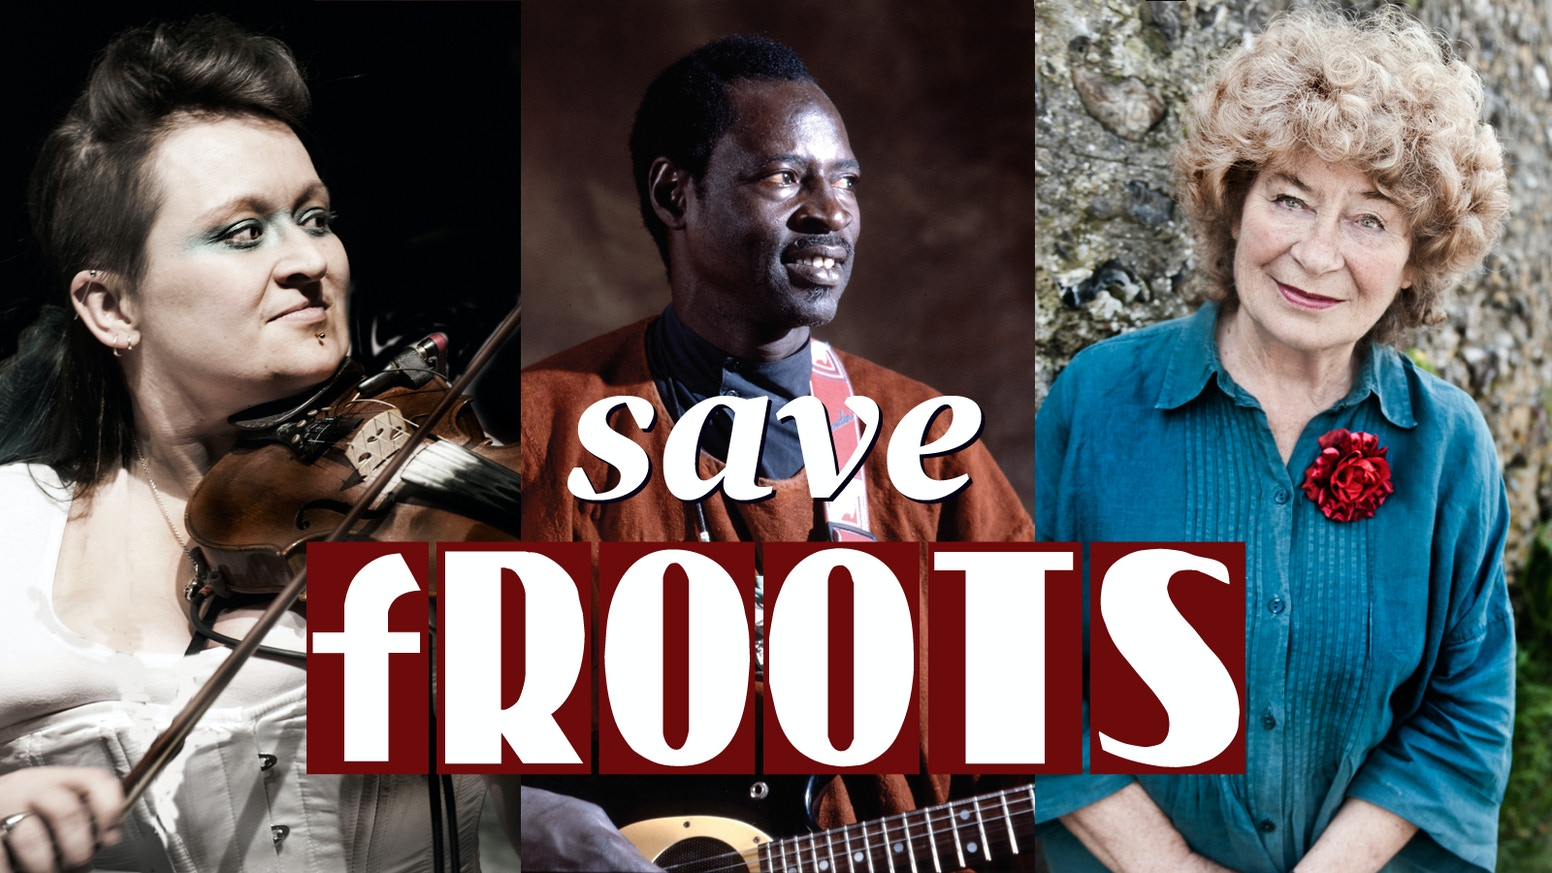 Save fRoots magazine by Ian Anderson — Kickstarter